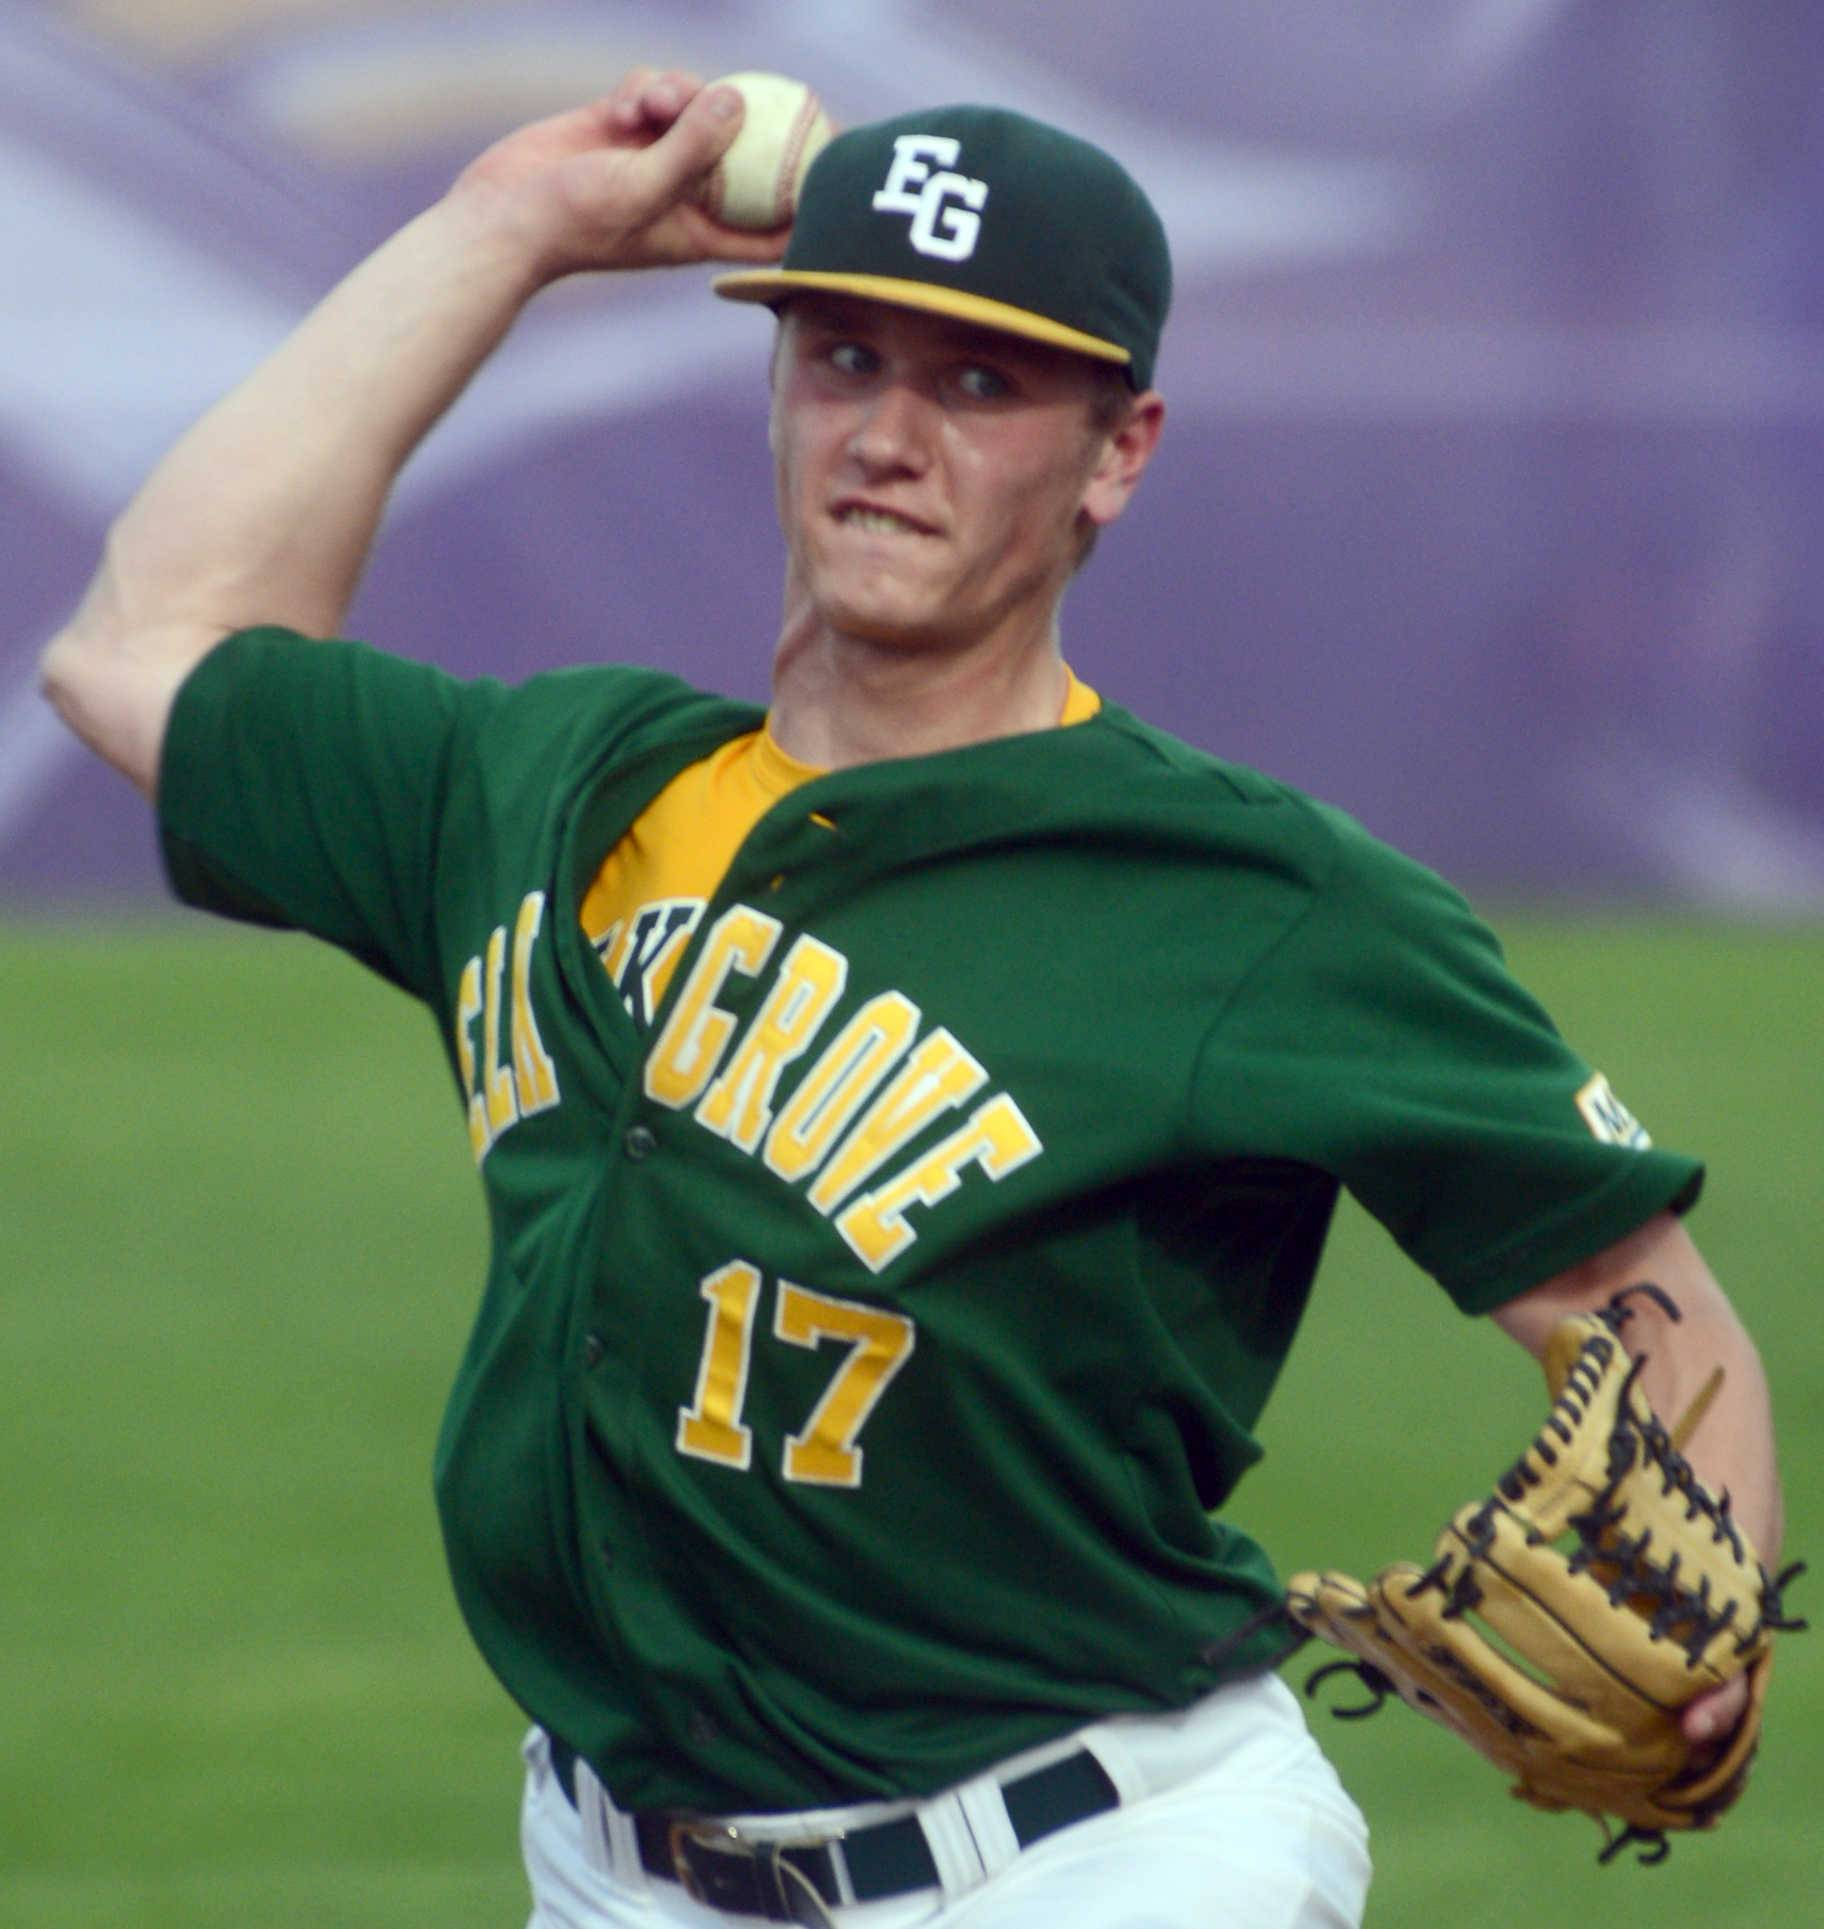 Elk Grove's  Adam O'Malley delivers against Rolling Meadows on Monday.